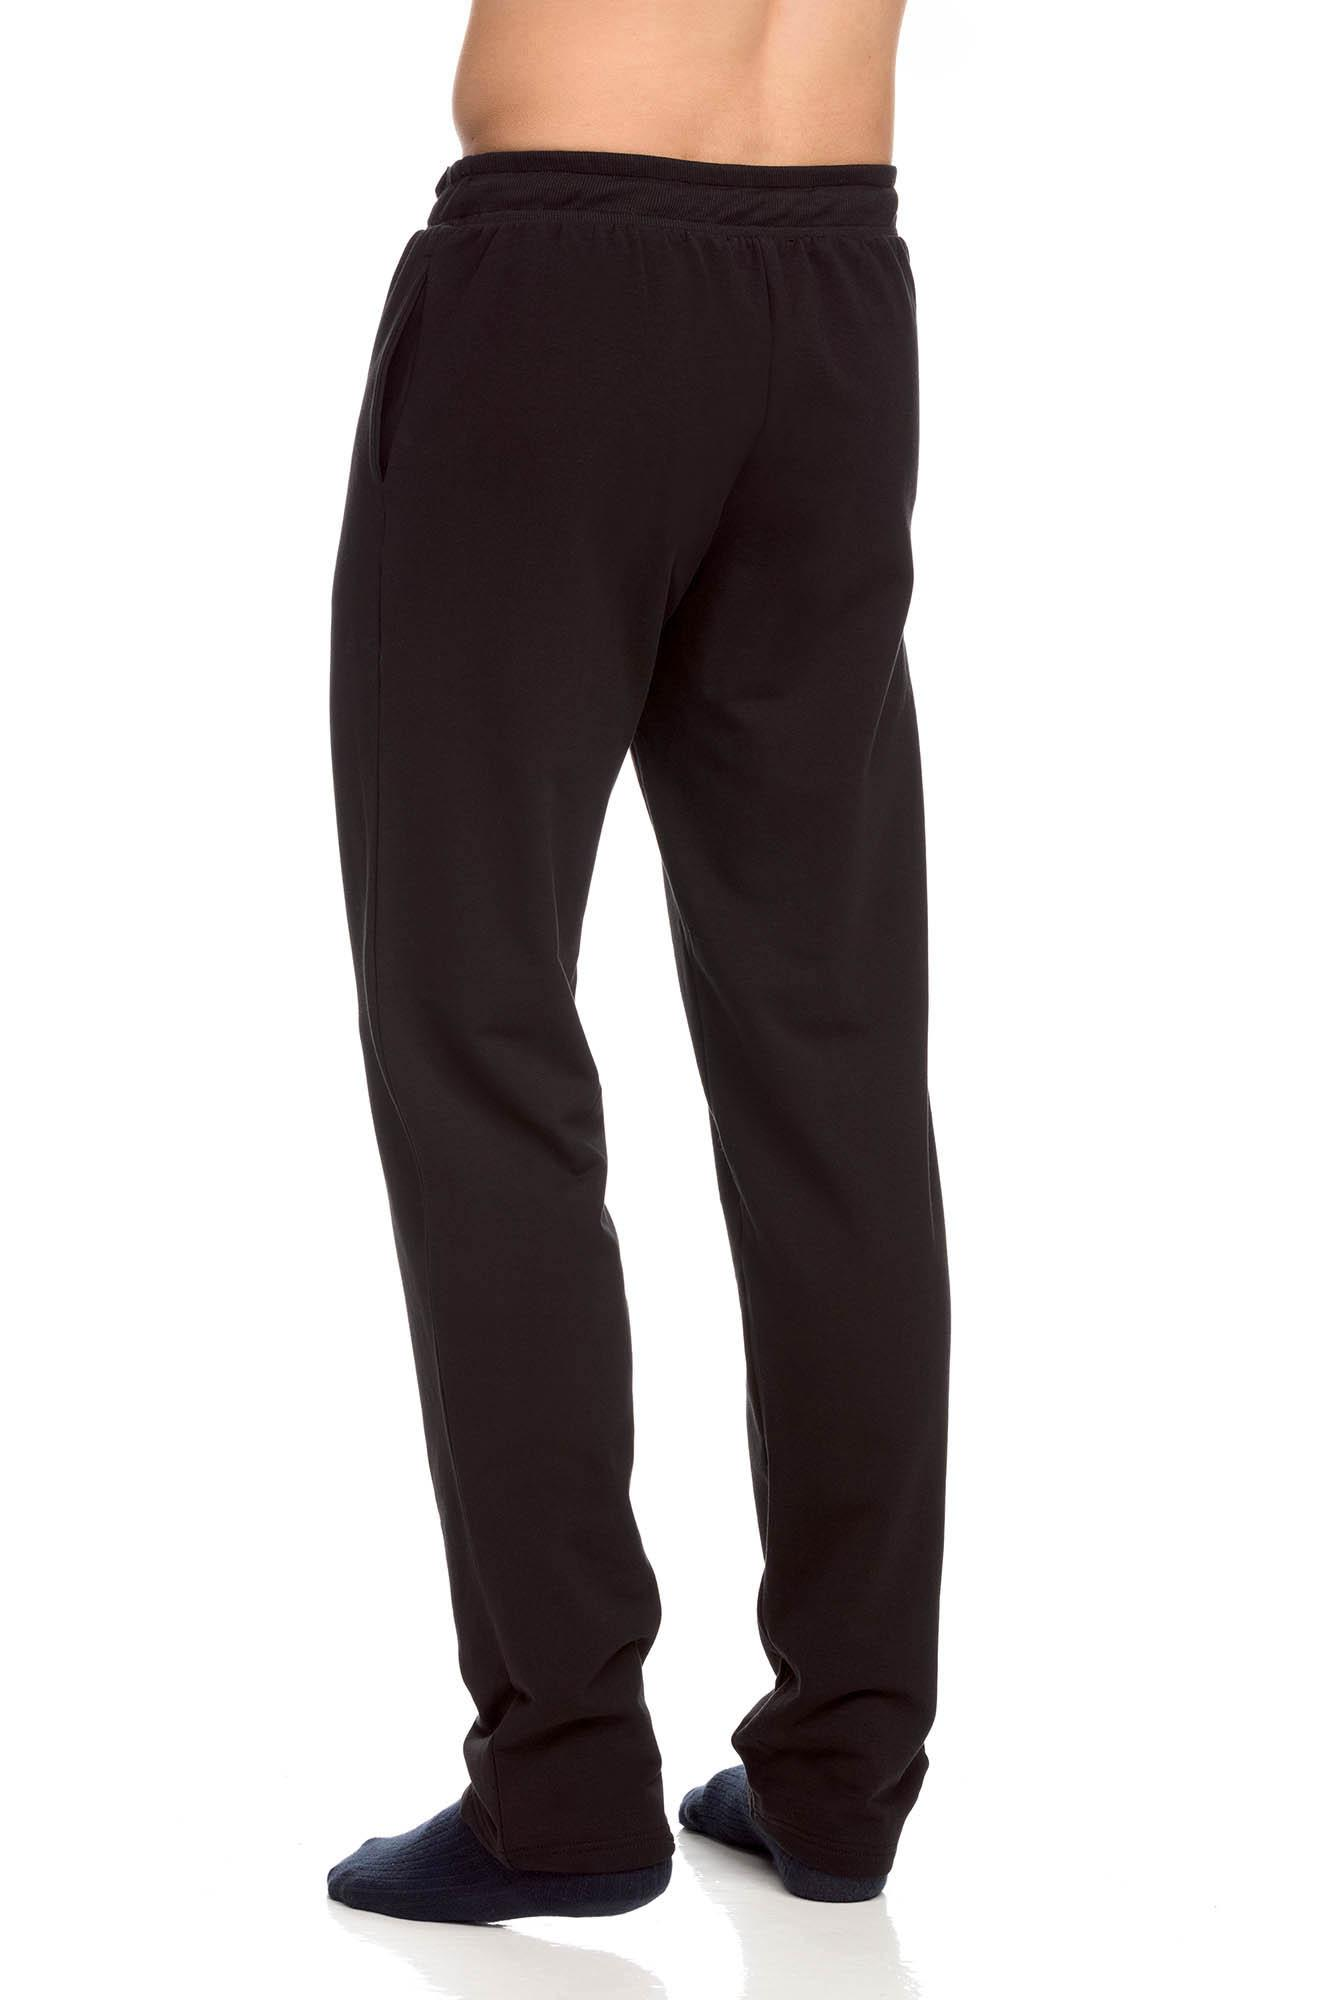 Men's Cotton Pants with Pockets